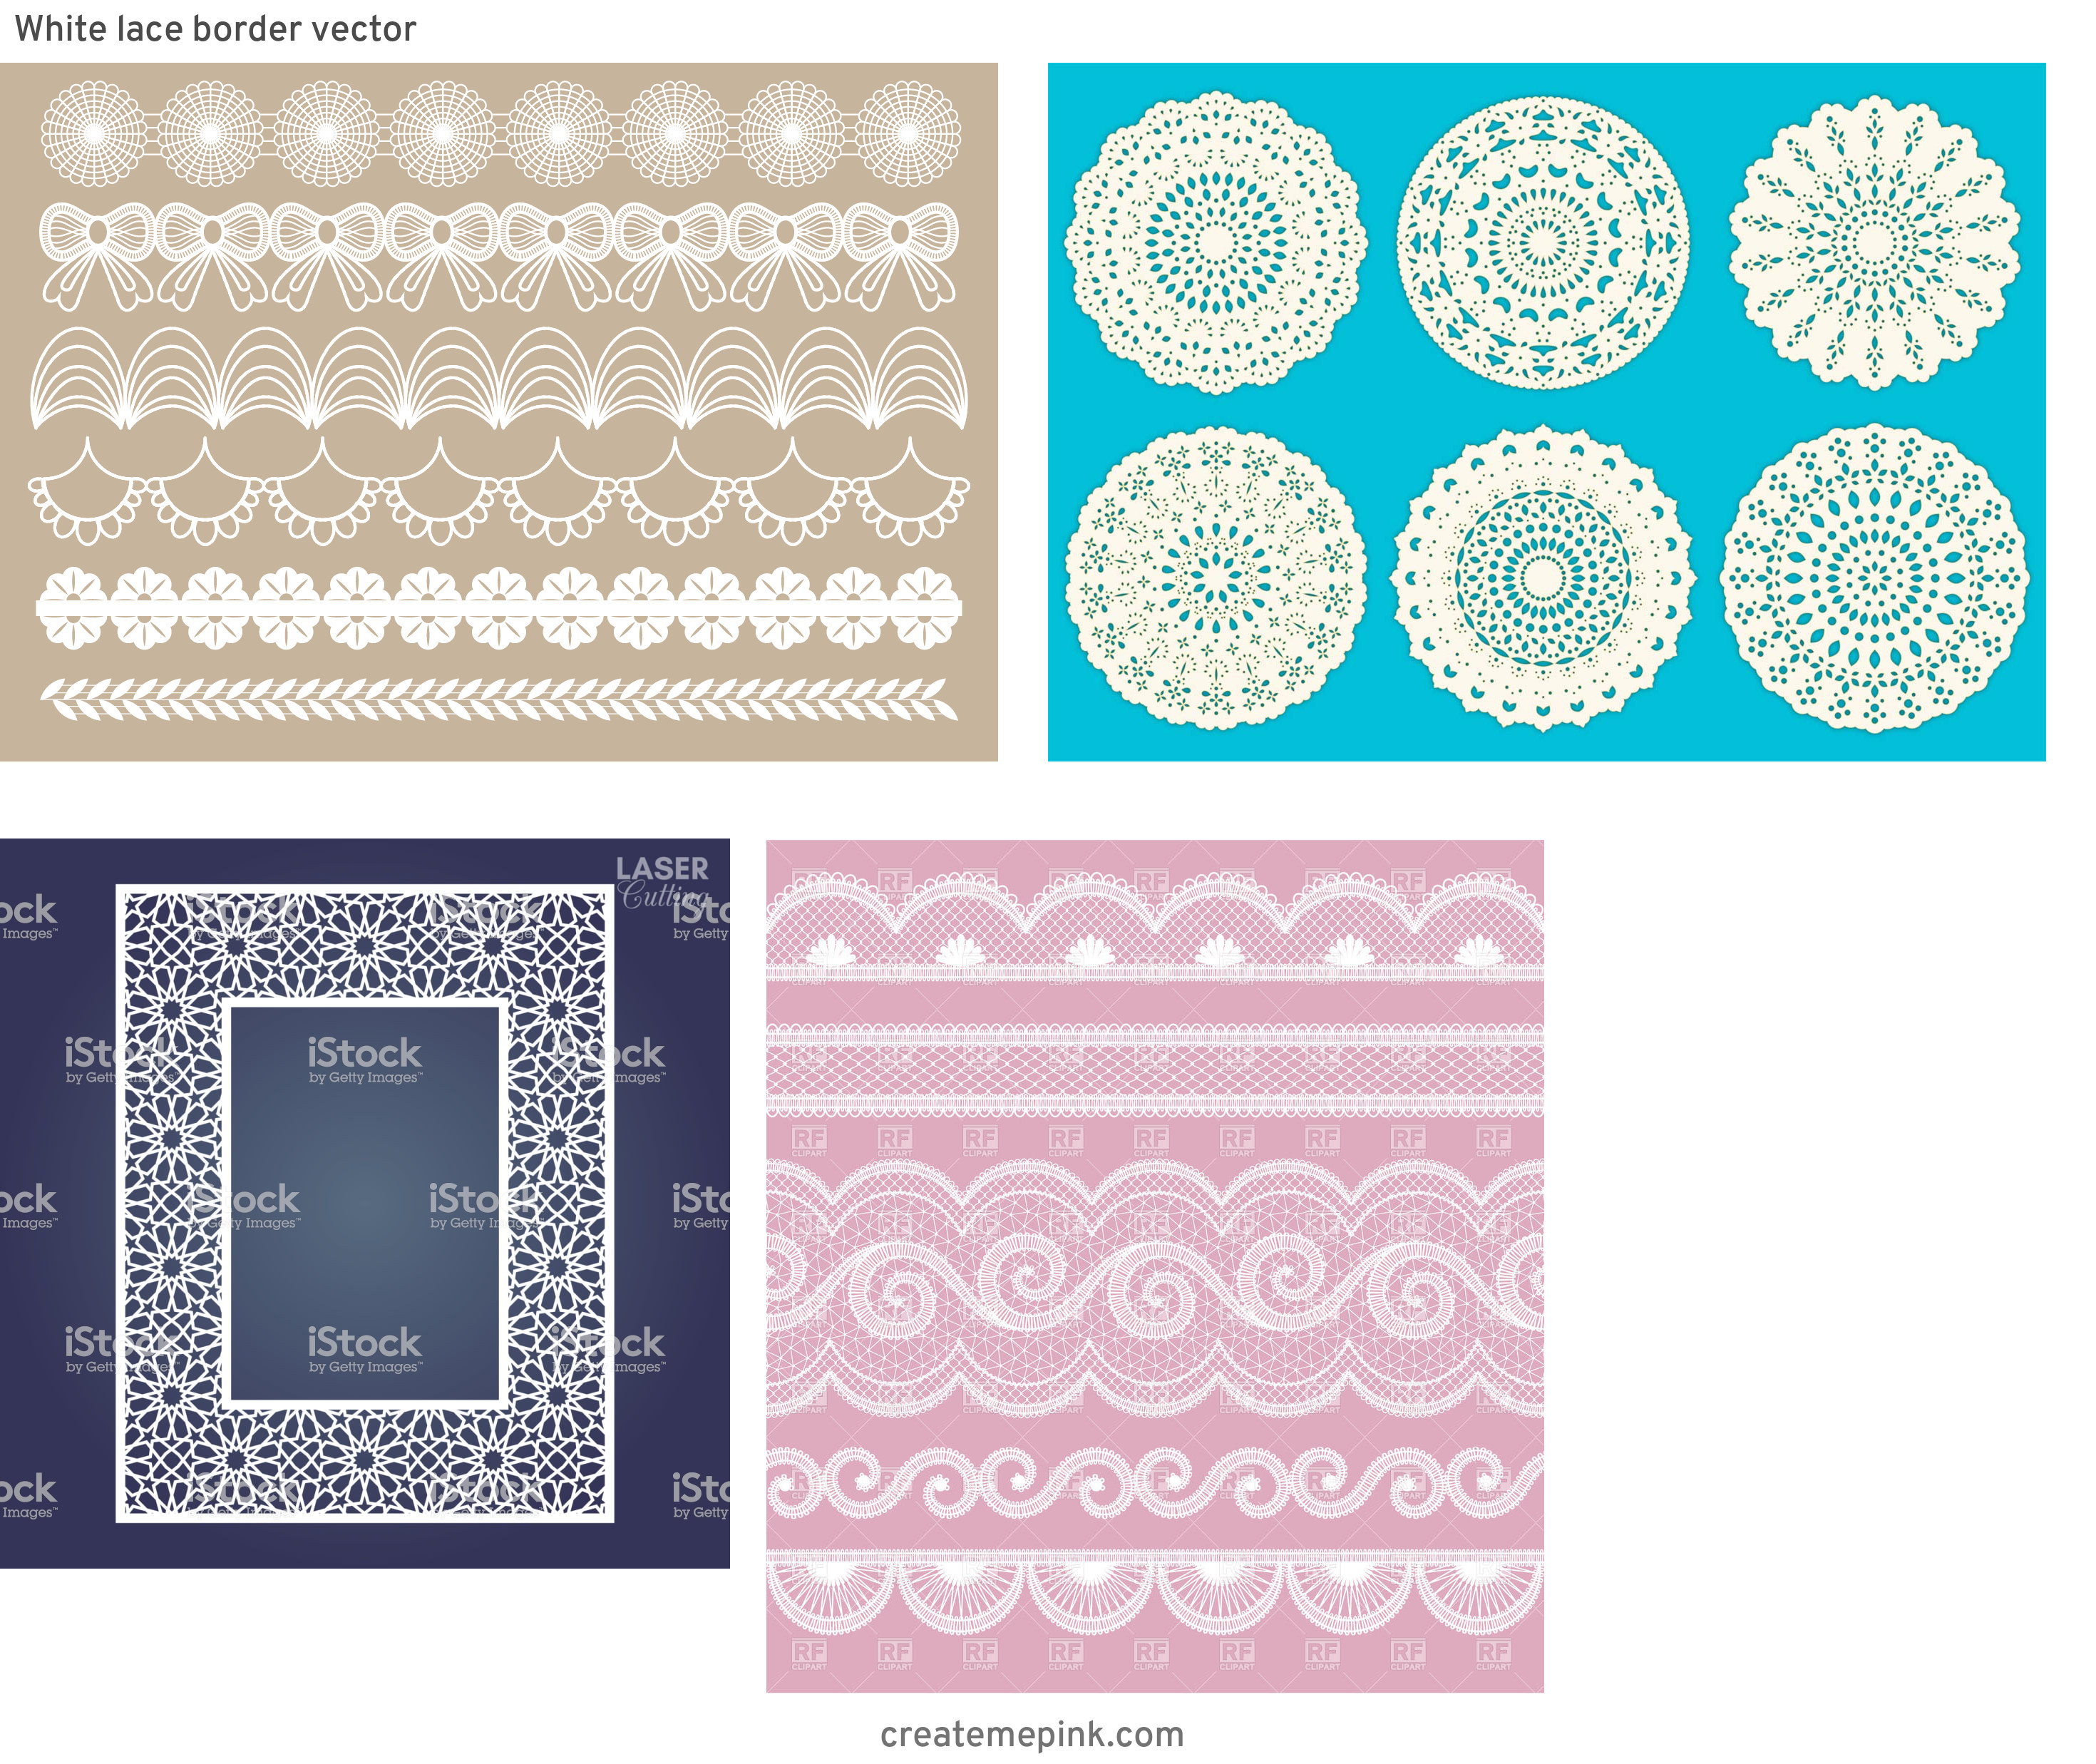 Simple Lace Frame Vector: White Lace Border Vector